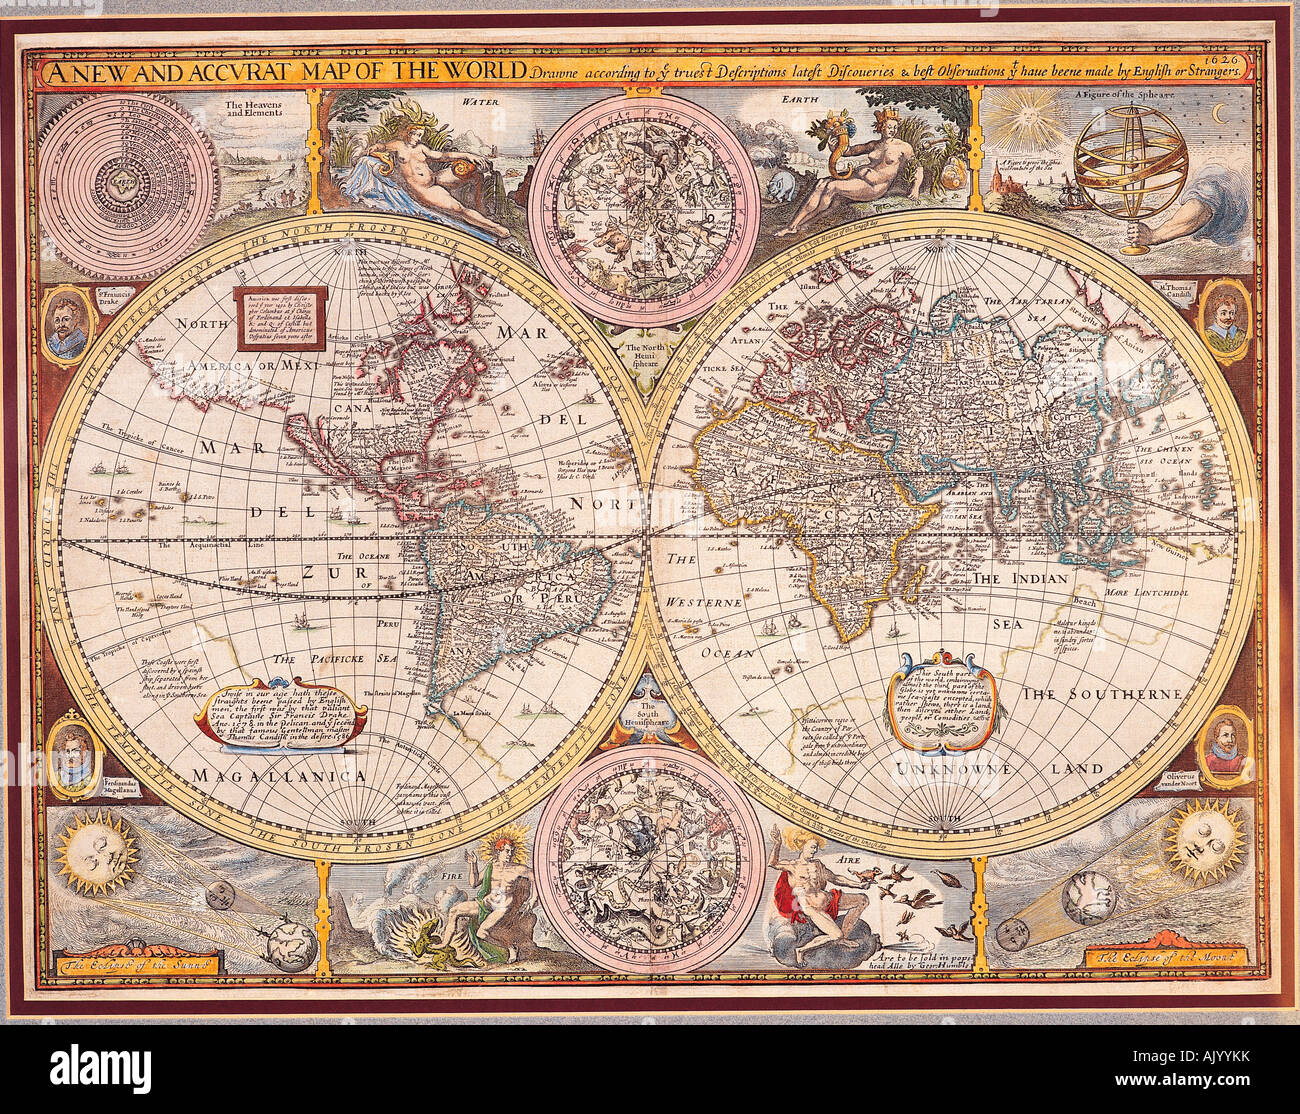 A New And Accvrat Map Of The World 1626.Historical Map Of The World A New And Accurat Map Of The World